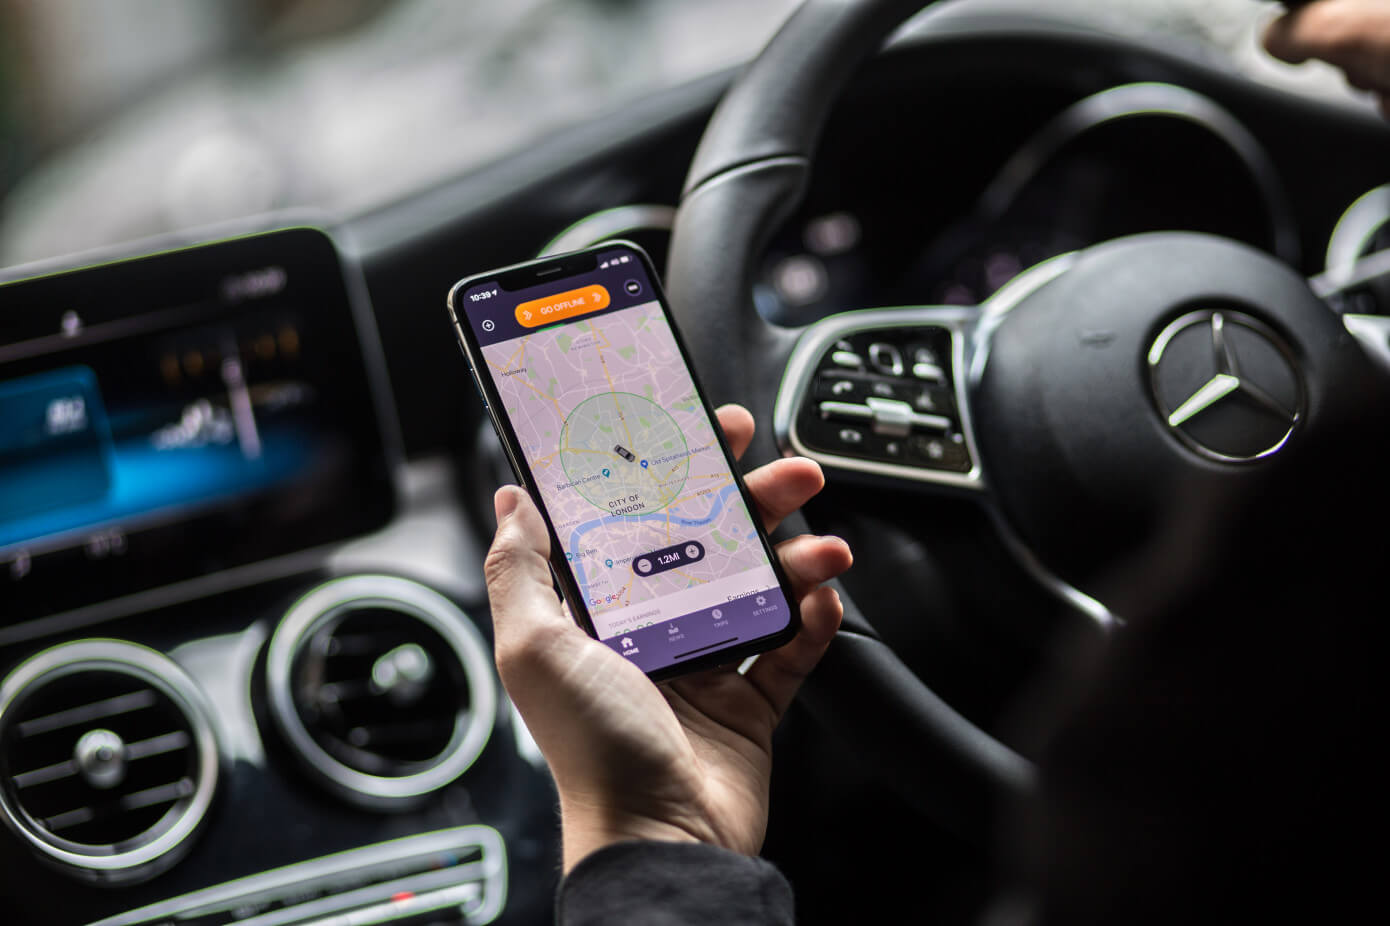 The European Investment Bank (EIB) has given   a sum of 50 million Euros to Bolt, a ride hailing service firm support its product development and research as well as the sustainability of its services